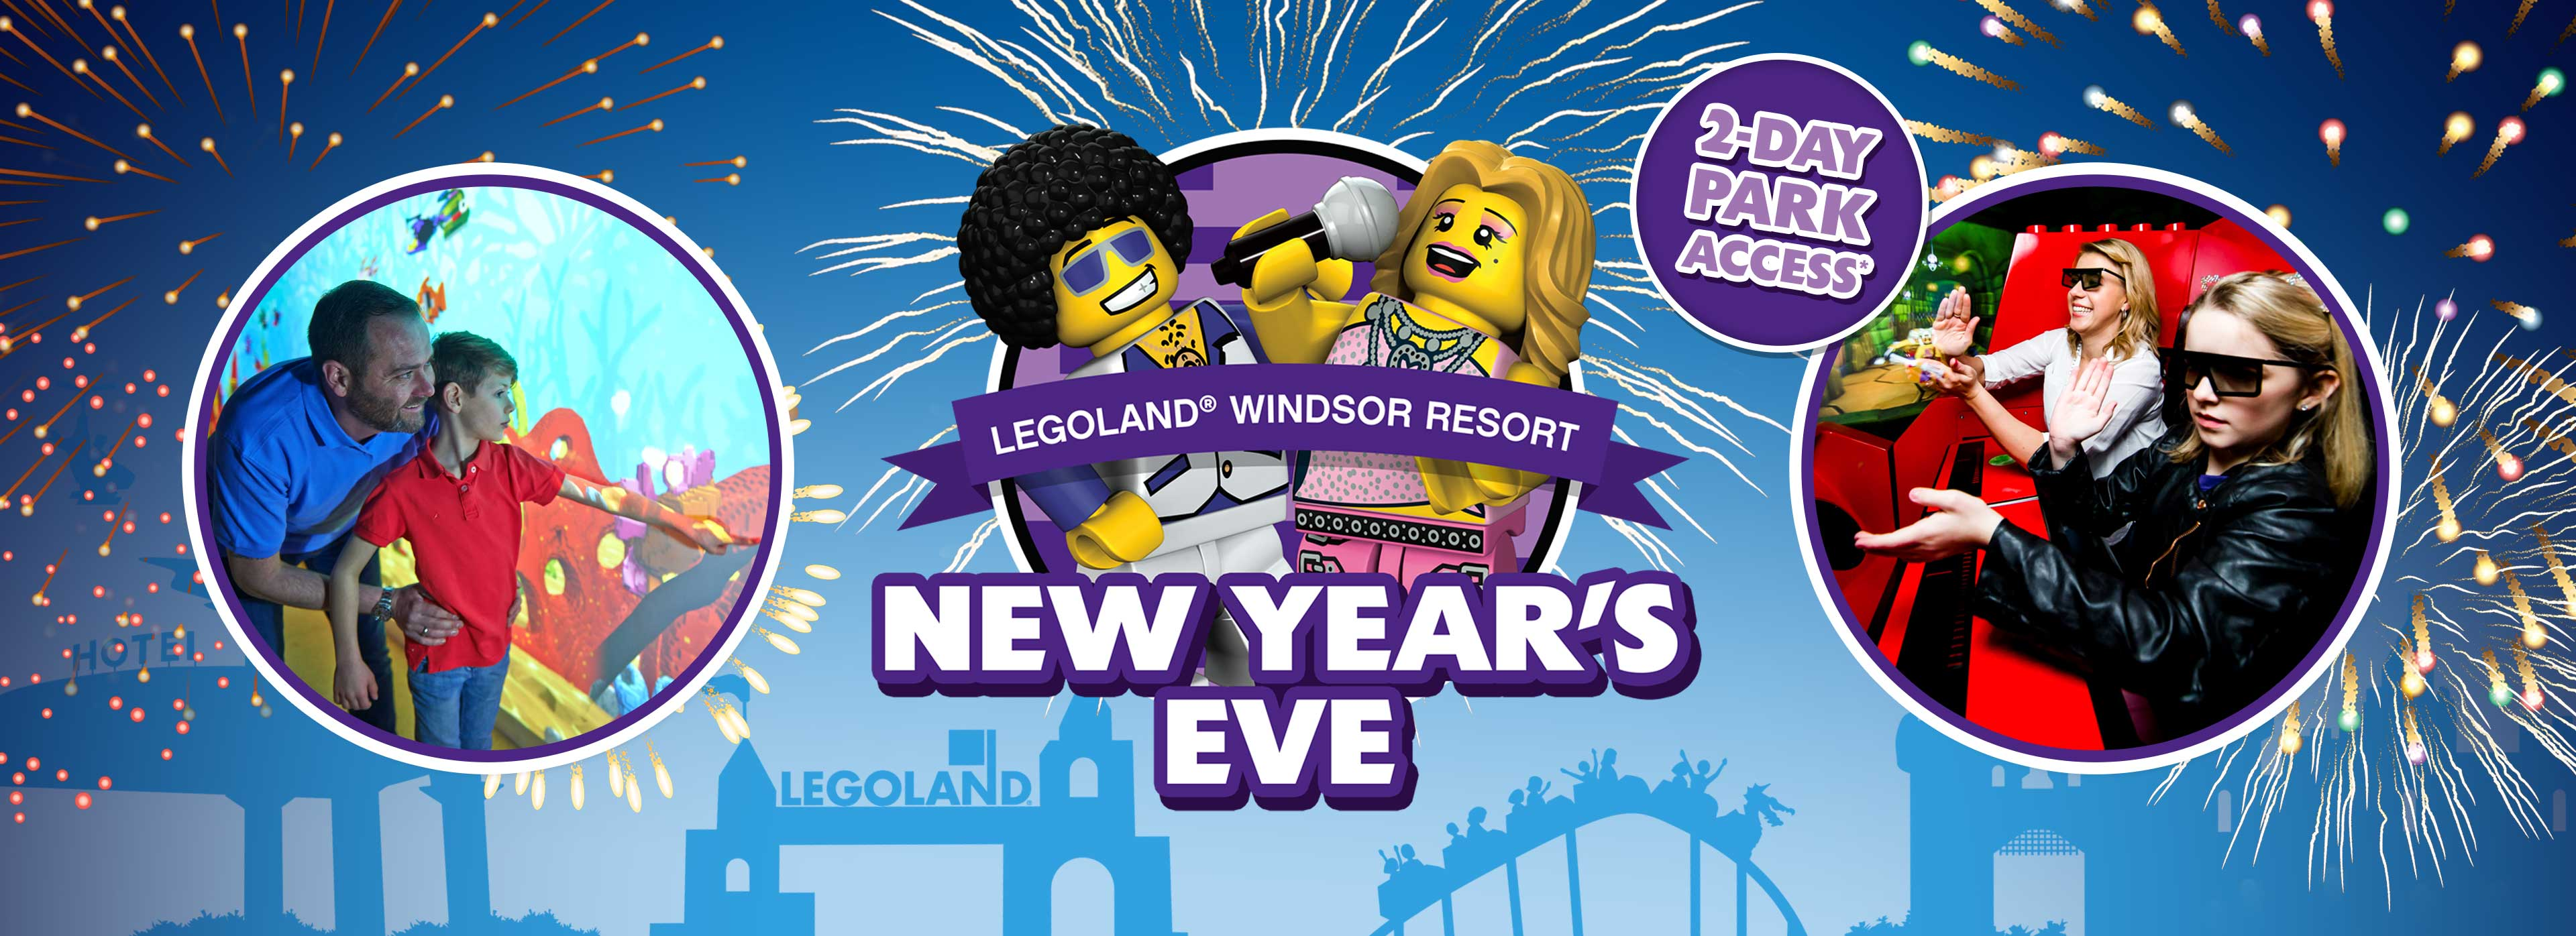 Book your family's LEGOLAND Windsor Resort New Year's Eve short break today!